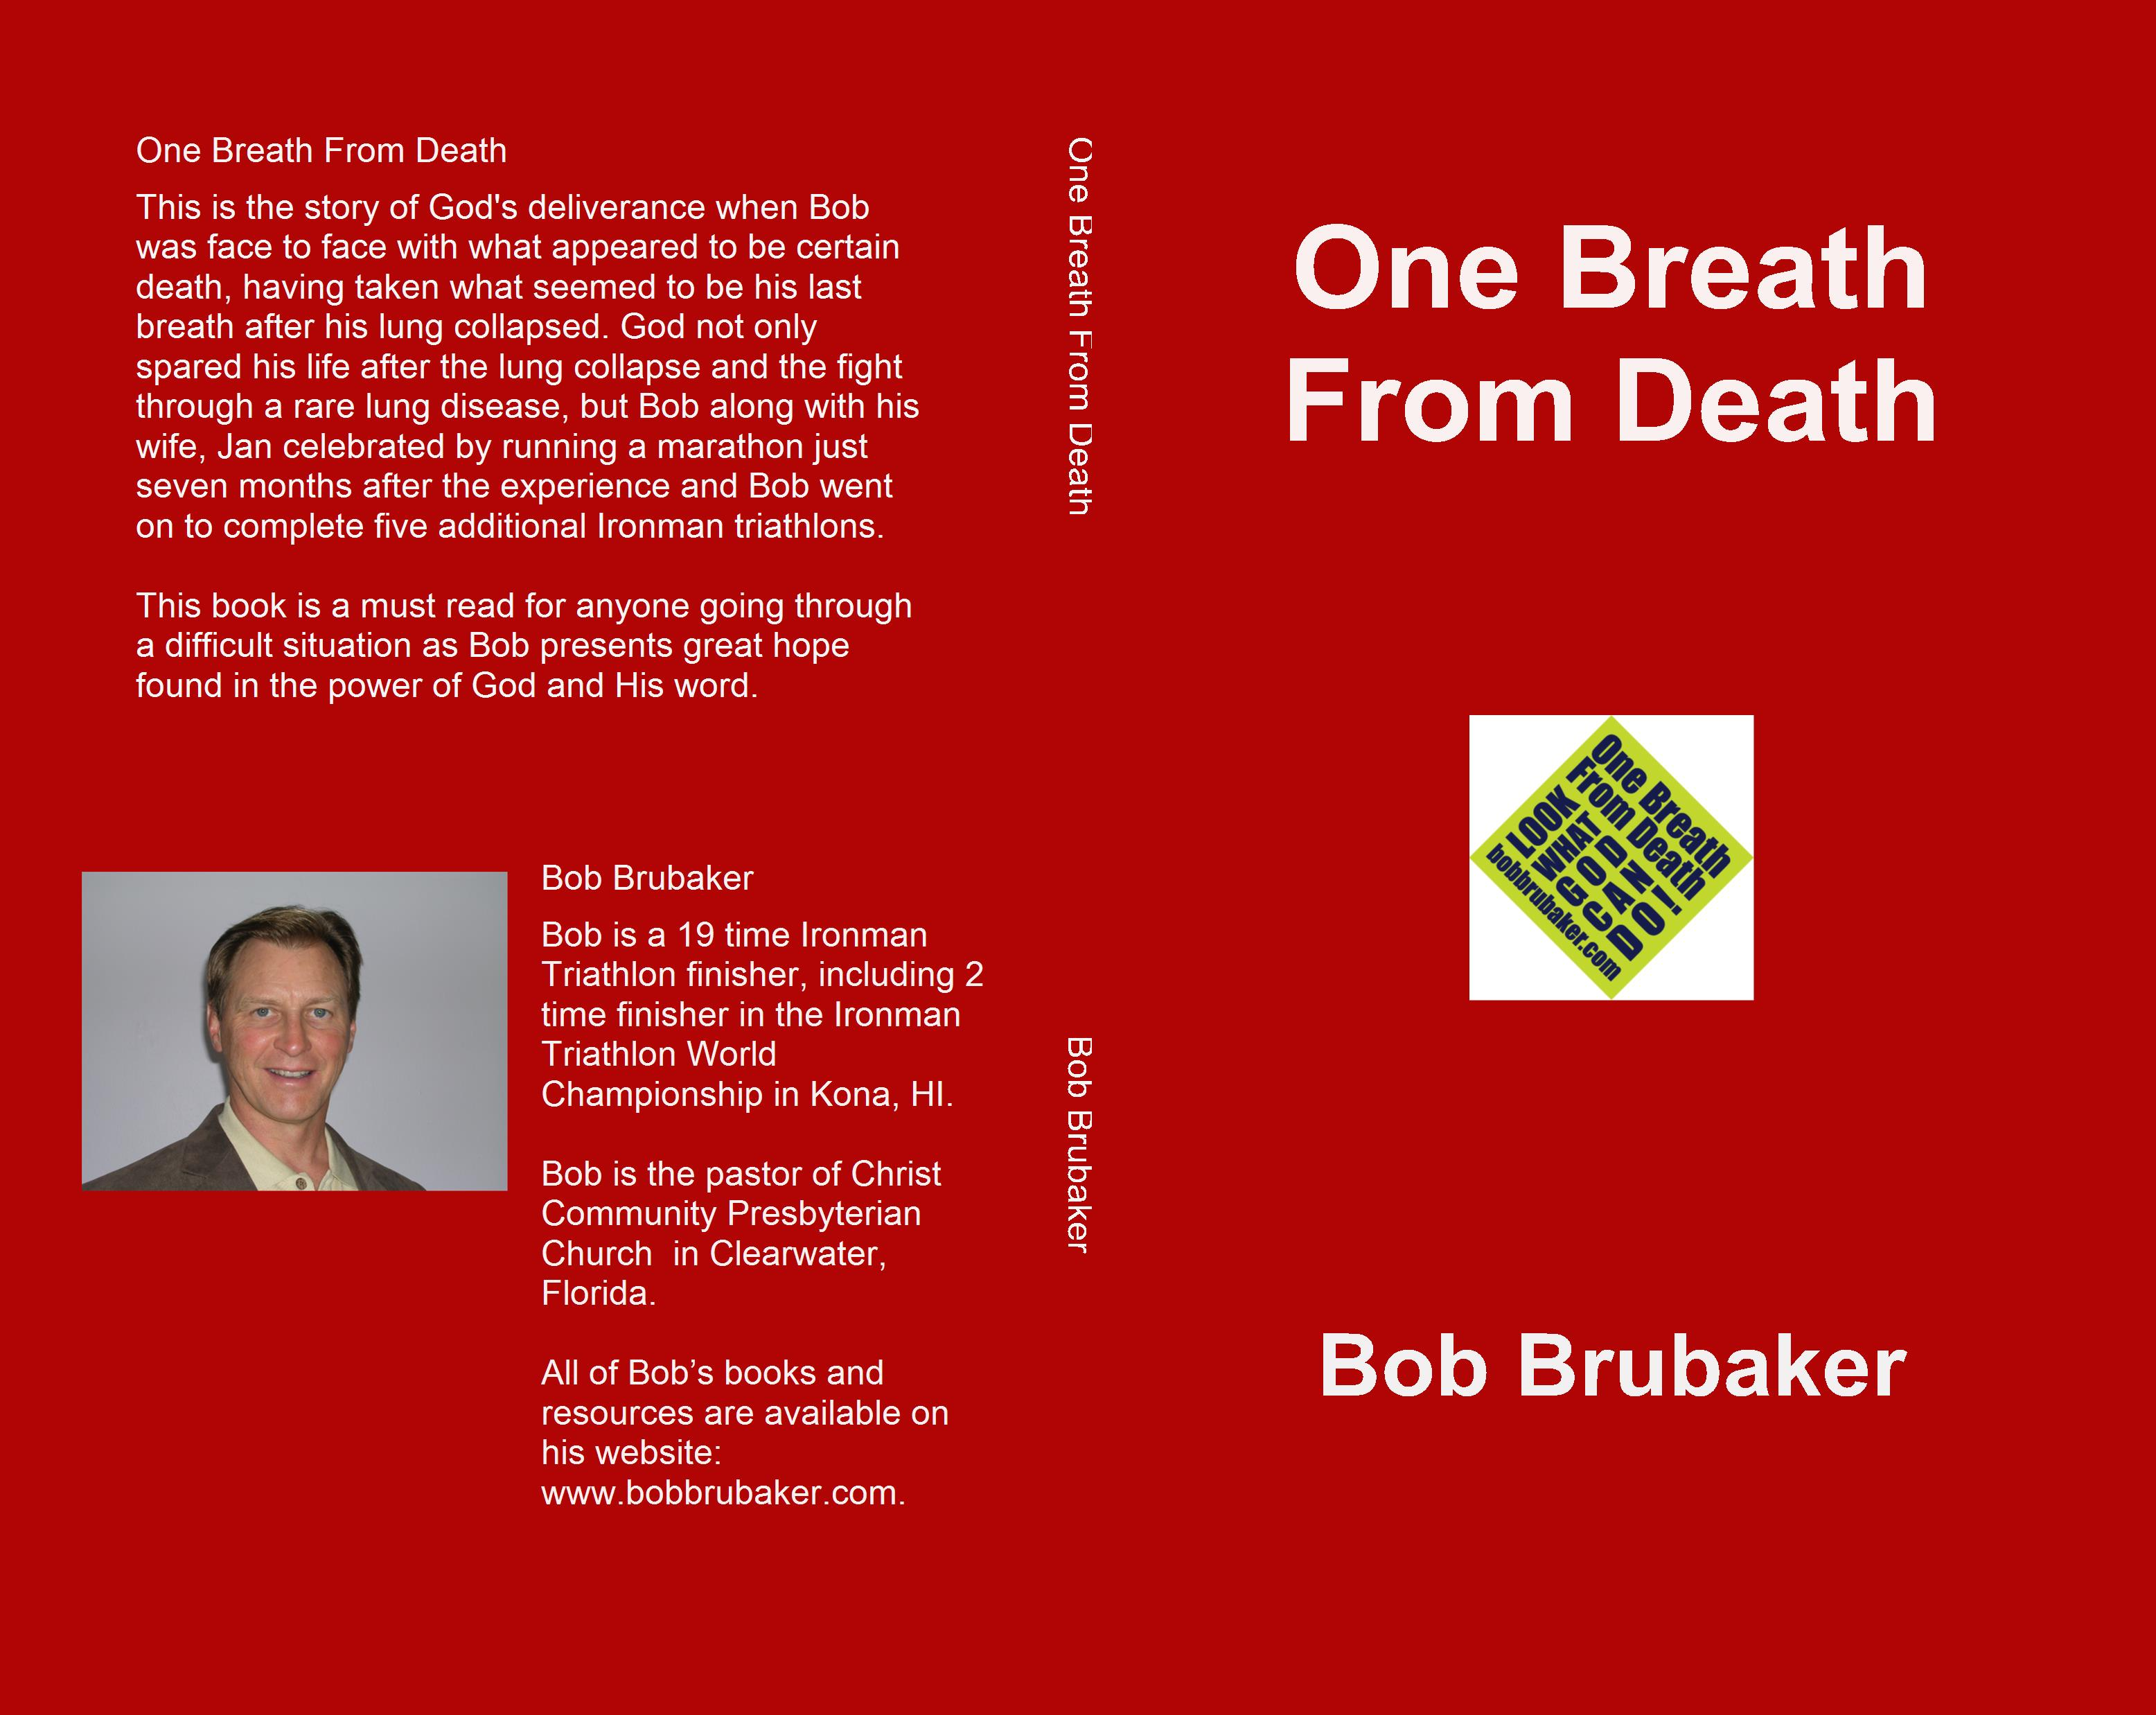 One Breath From Death cover image